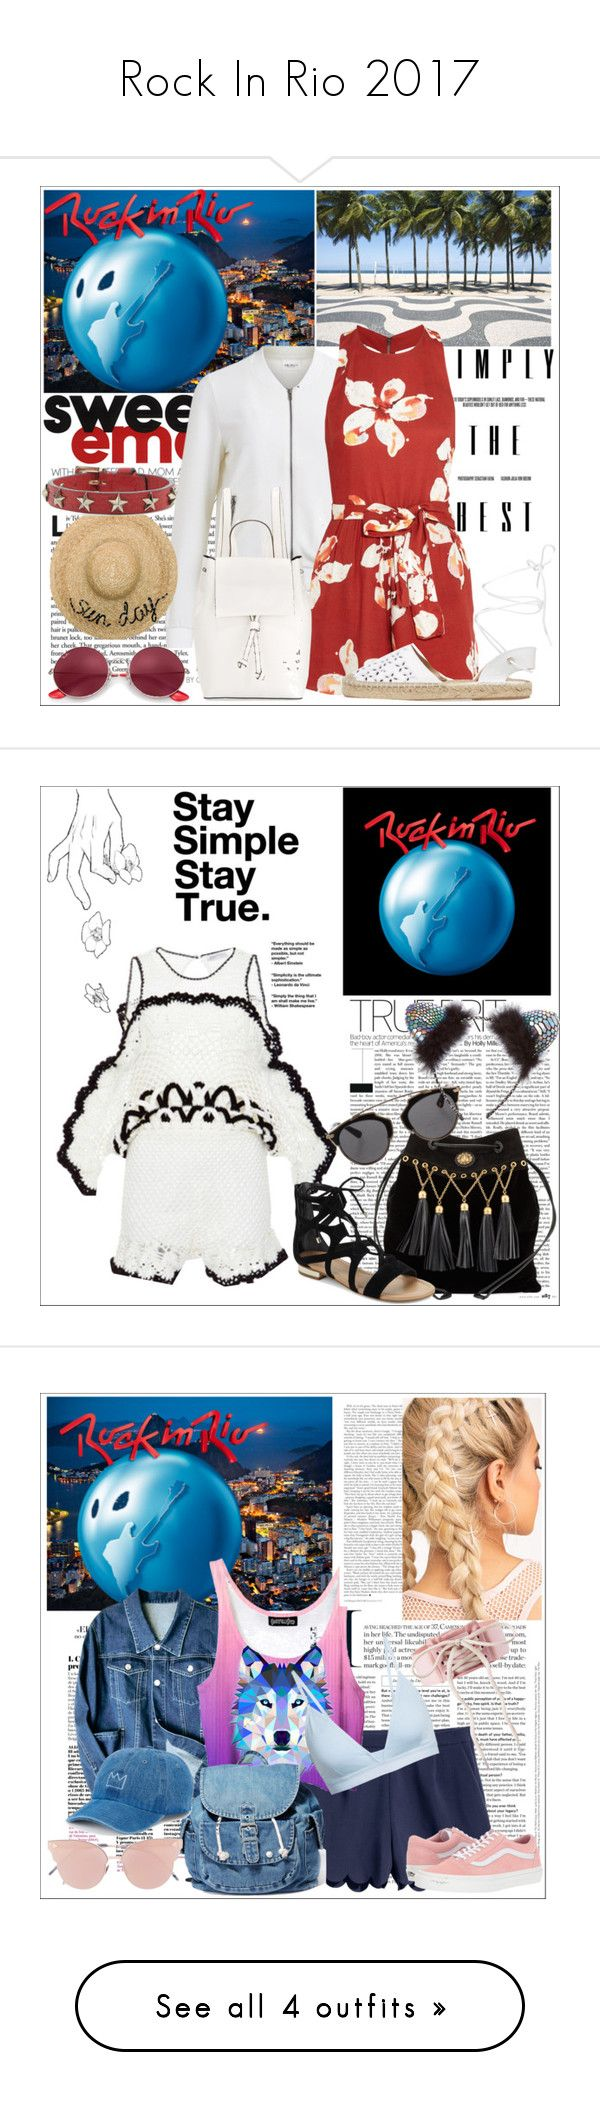 """""""Rock In Rio 2017"""" by larinhacarter ❤ liked on Polyvore featuring National Geographic Home, Object Collectors Item, Alice + Olivia, French Connection, Maiden Lane, Ray-Ban, Eugenia Kim, RED Valentino, Alice McCall and Miu Miu"""